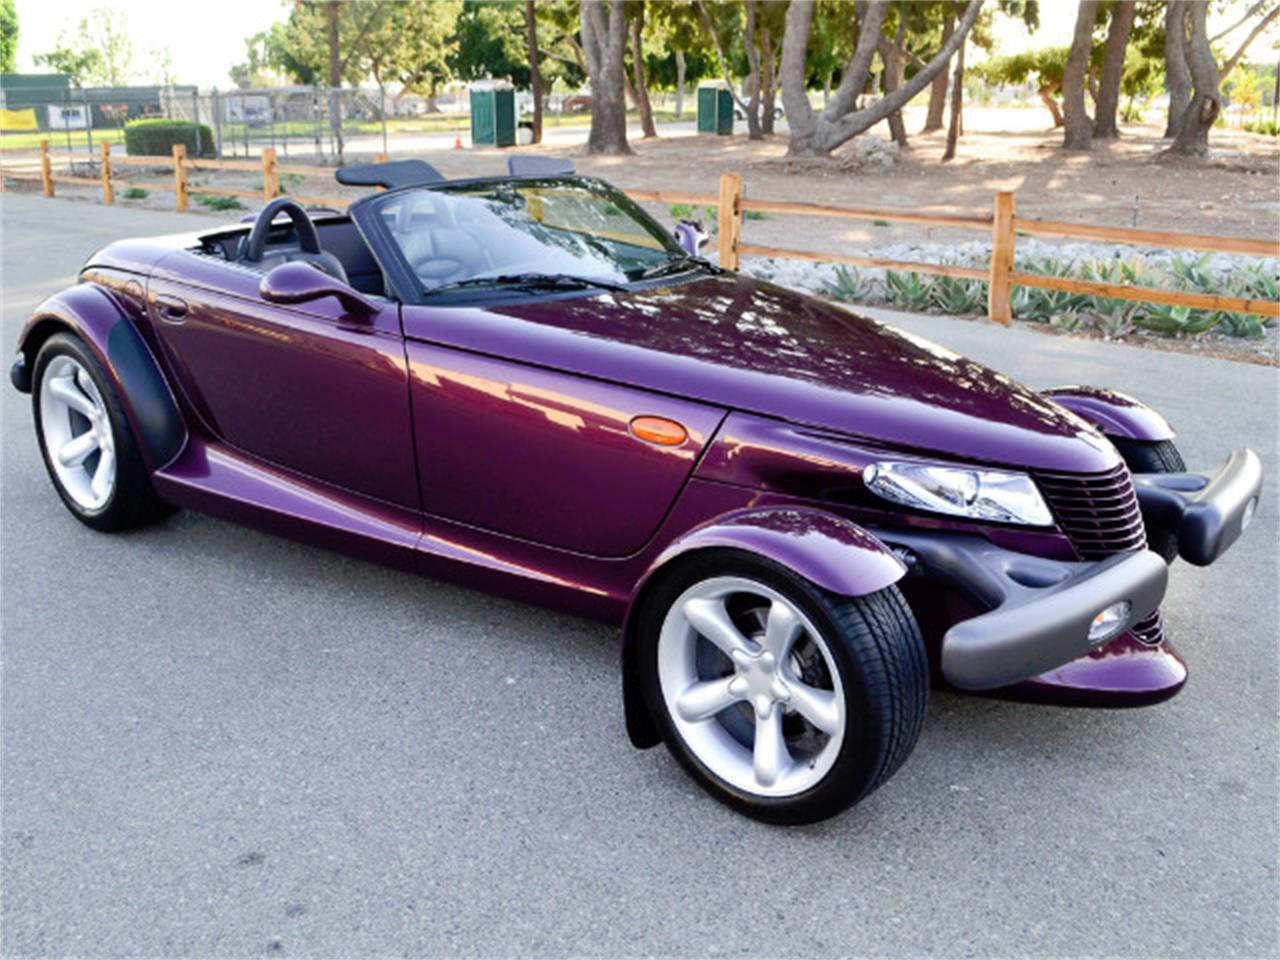 Plymouth prowler photo - 3